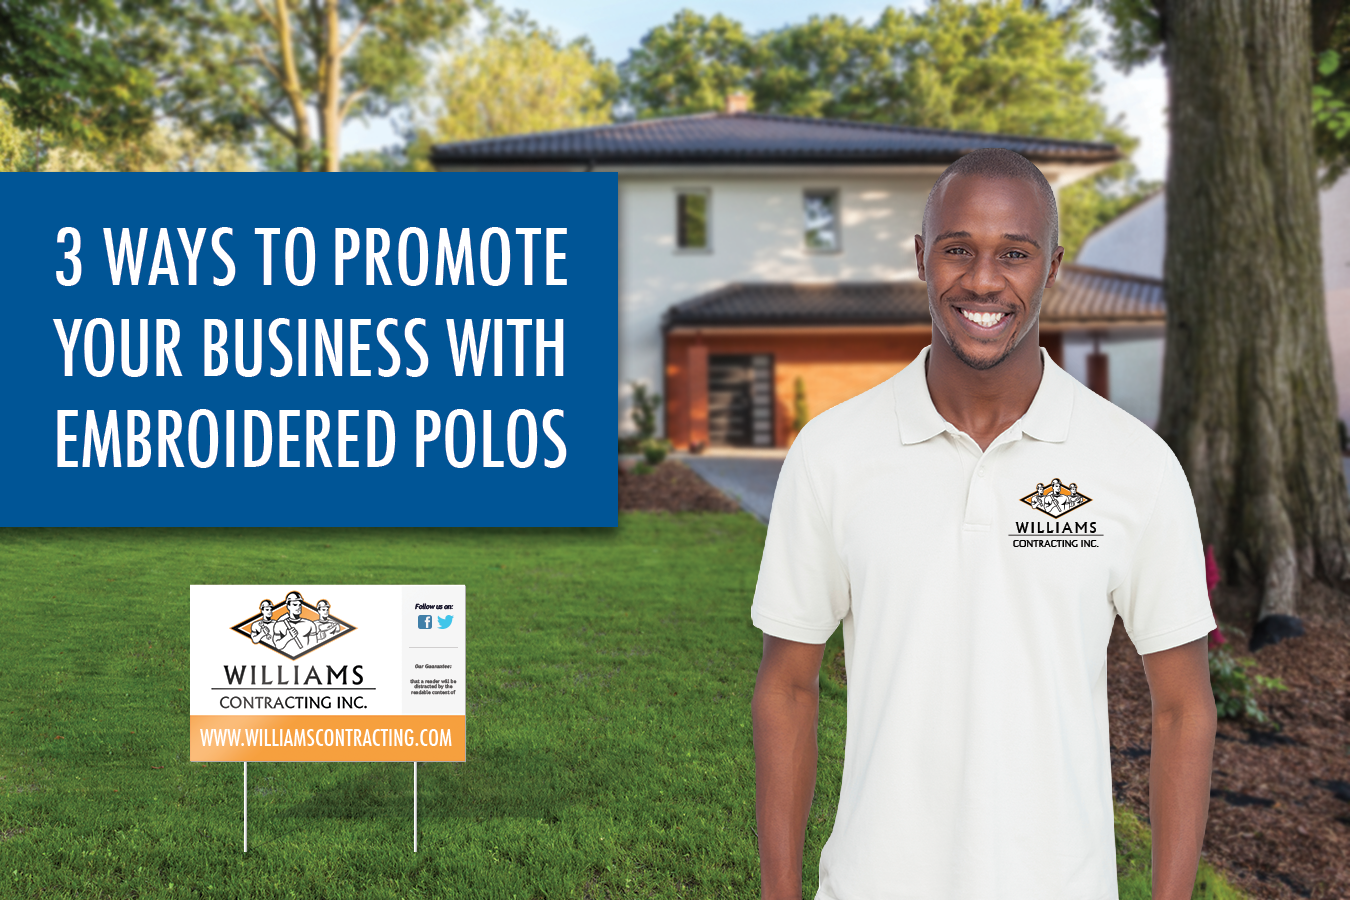 ways to promote your business with embroidered polos